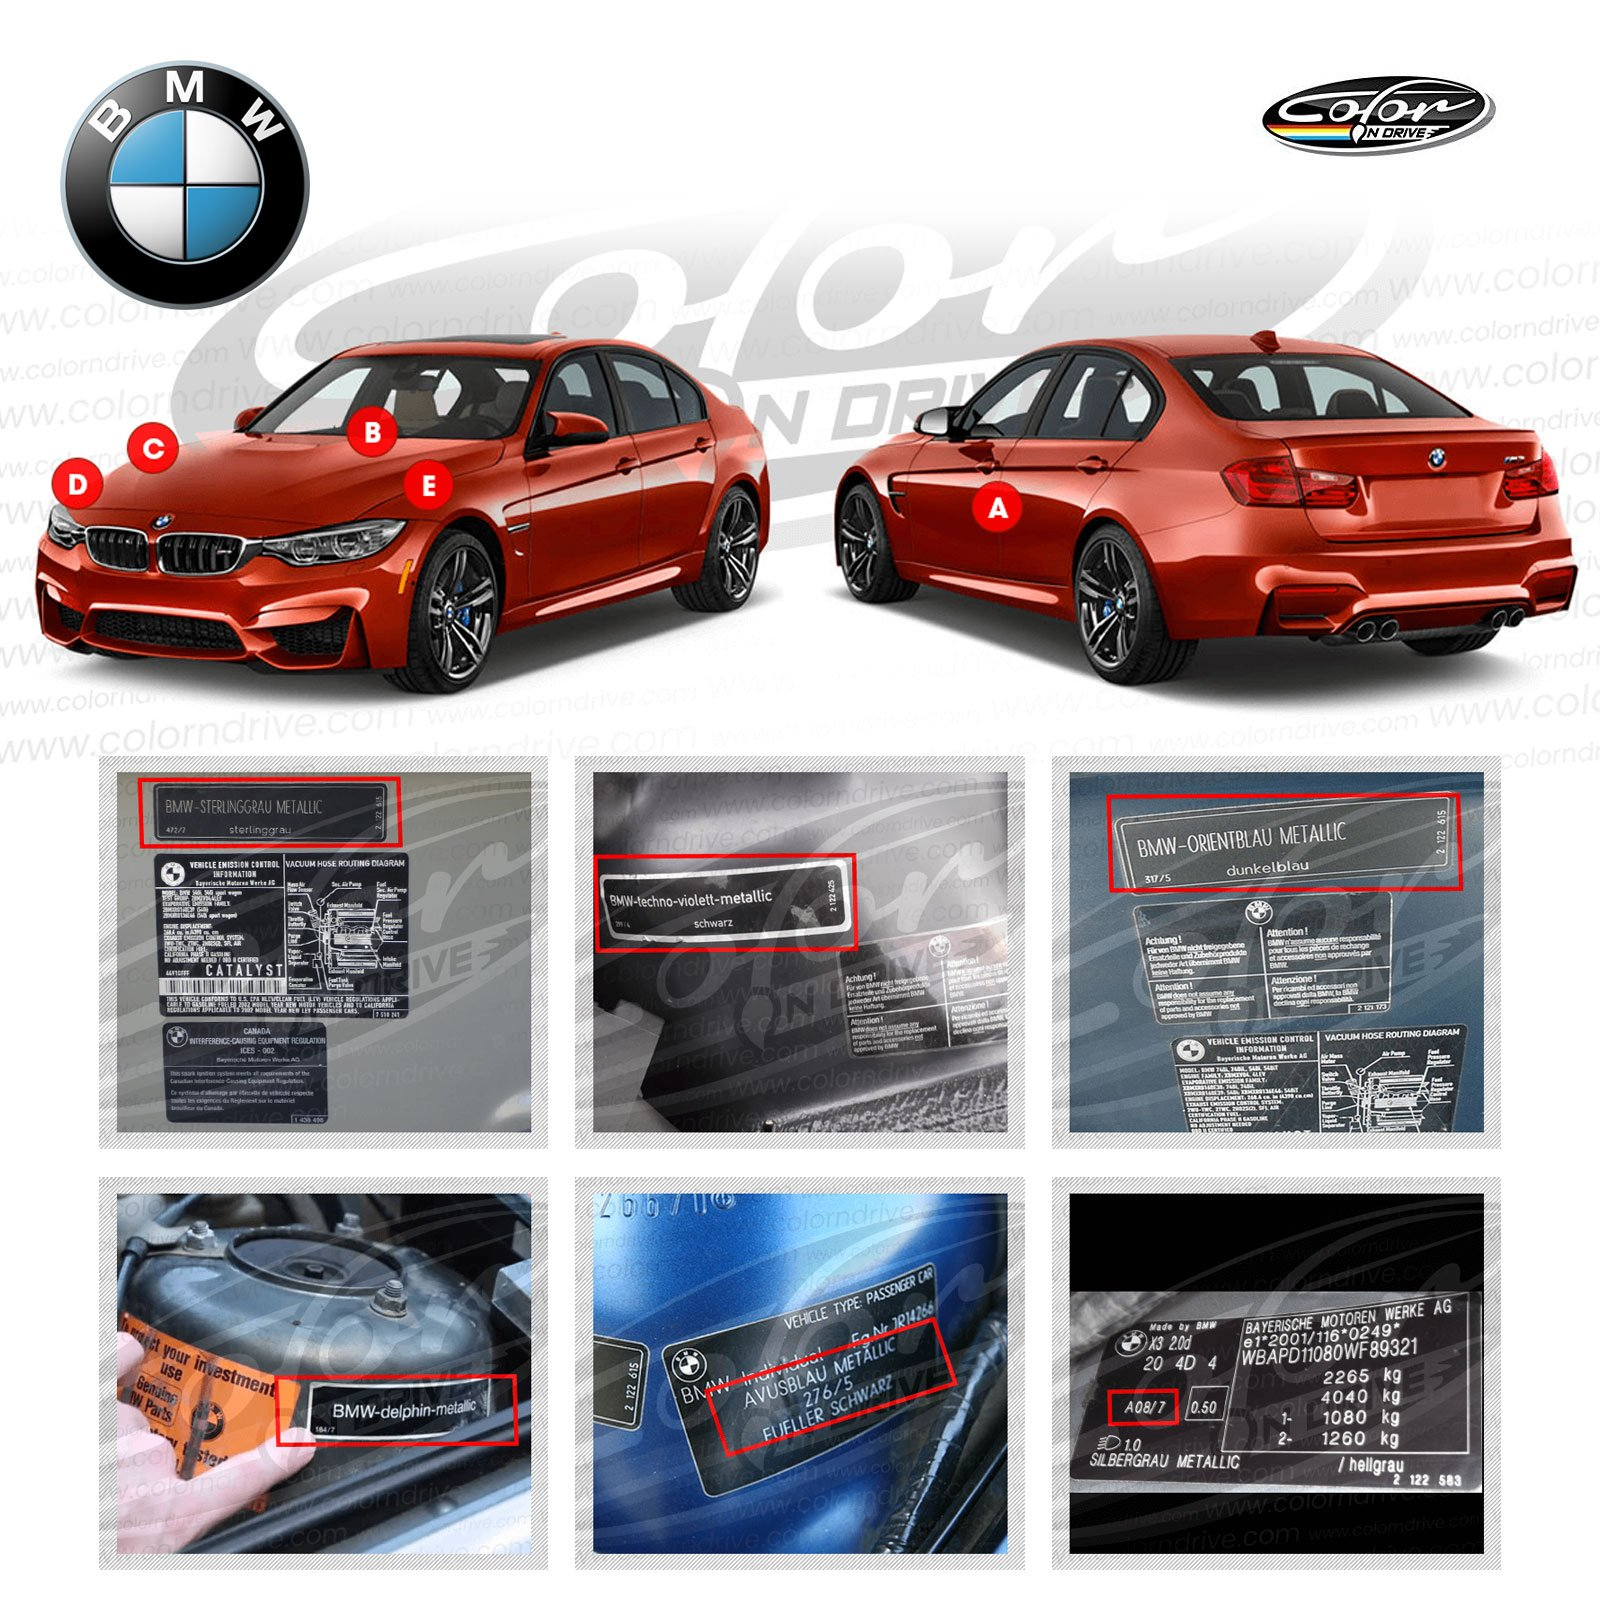 BMW Carbon Black Metallic - 416 Touch Up Paint for All 1, 2, 3, 4, 5, 6, 7, X1, X2, X3, X4, X5, X6 and M Series Paint Scrath and Chips Repair Kit - OEM Quality, Exact Color Match - Pro Pack by Color N Drive (Image #2)